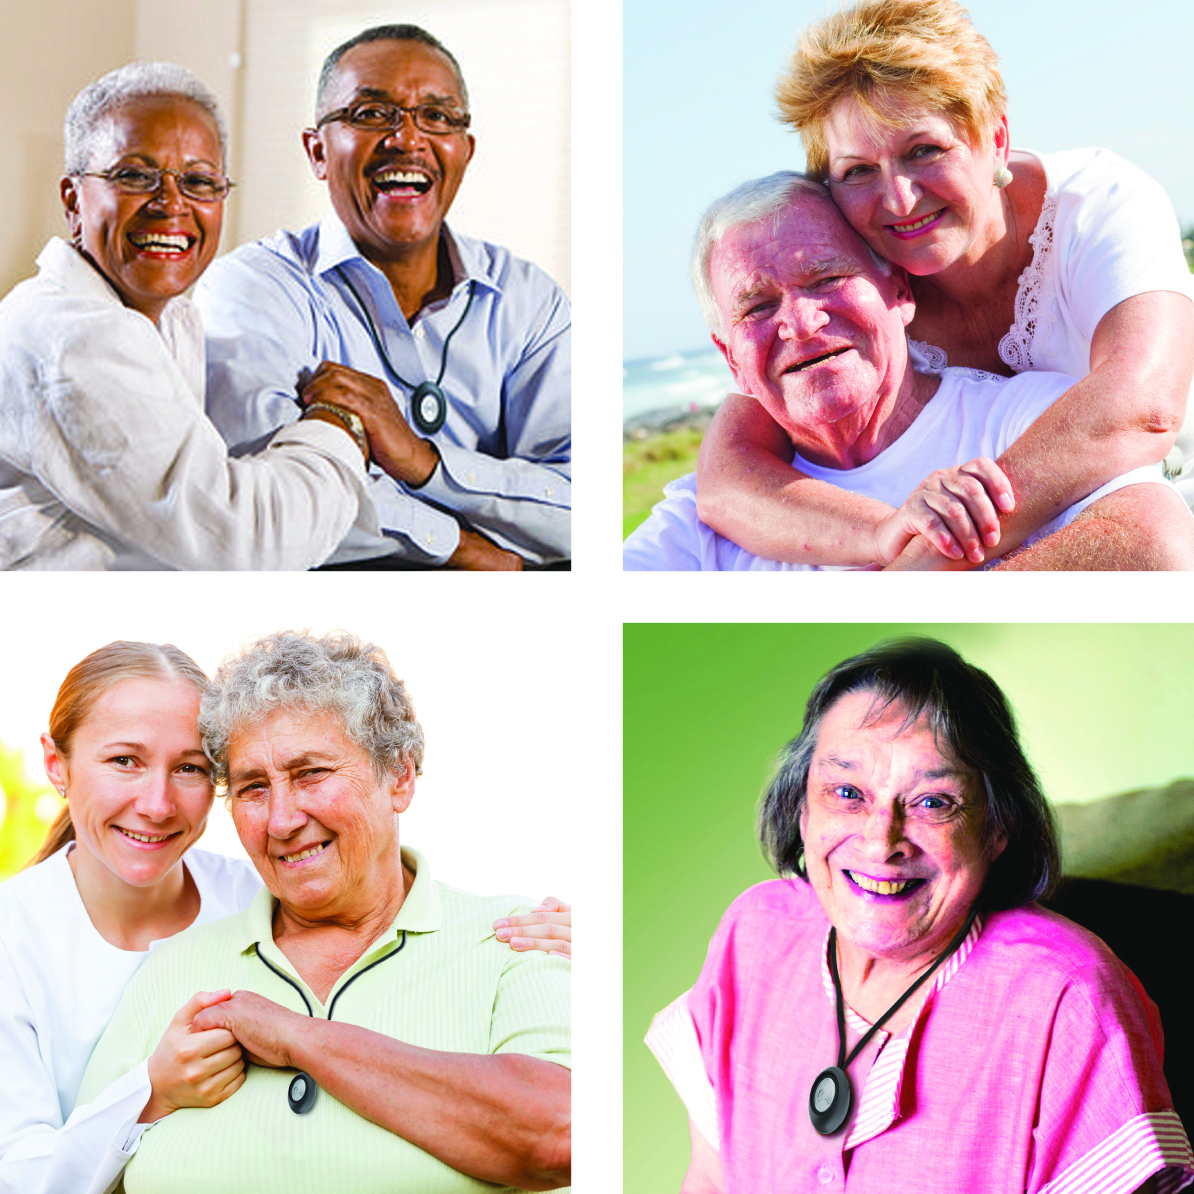 Herts Careline photo montage